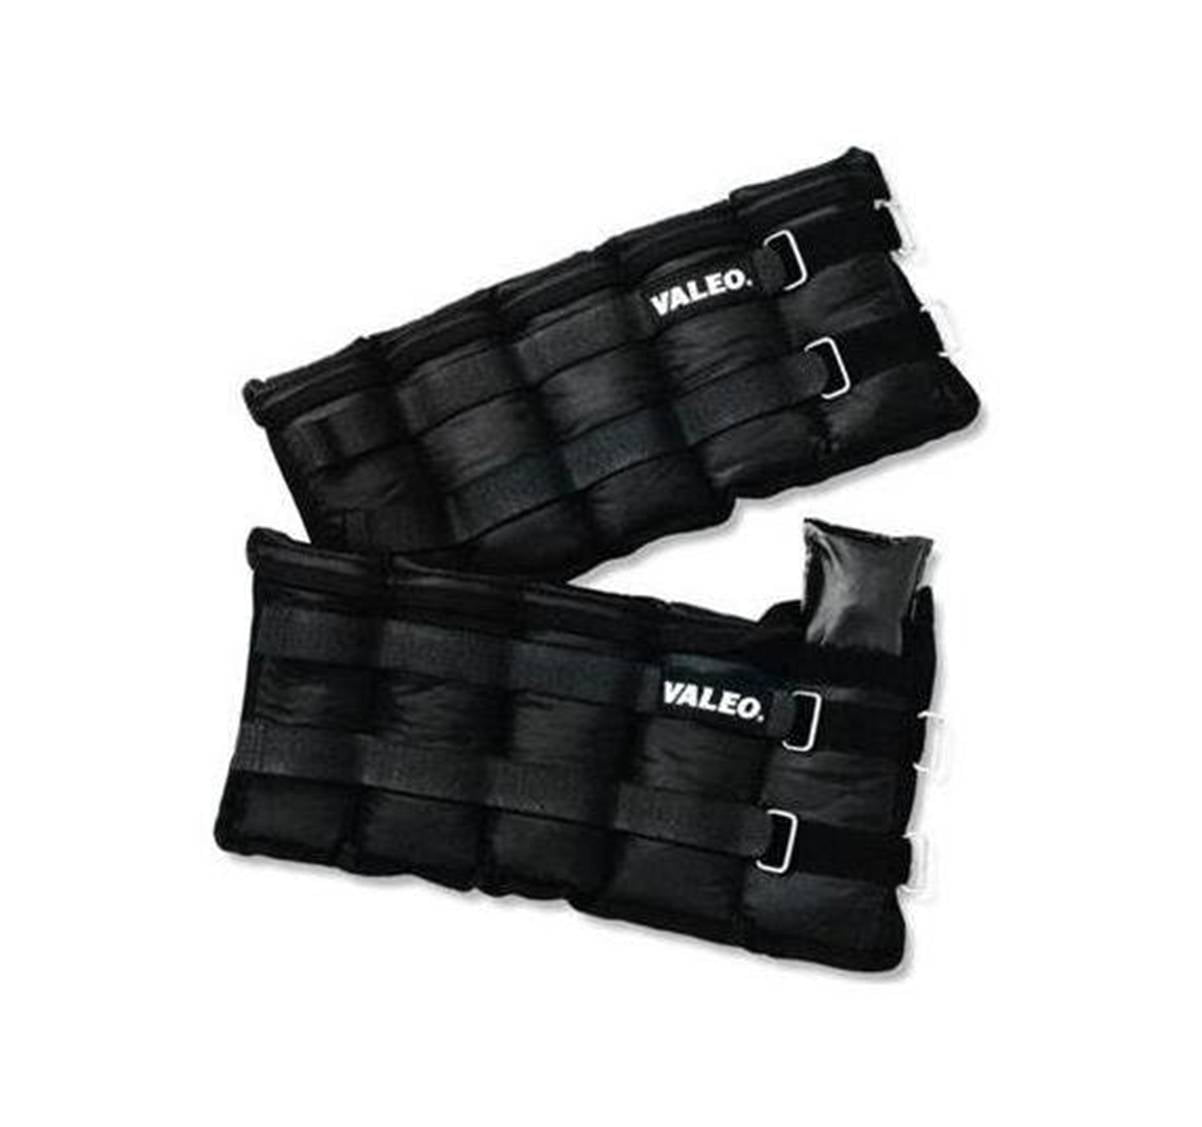 Best Adjustable Wrist Weights: Valeo Adjustable Ankle/Wrist Weights: 10lb